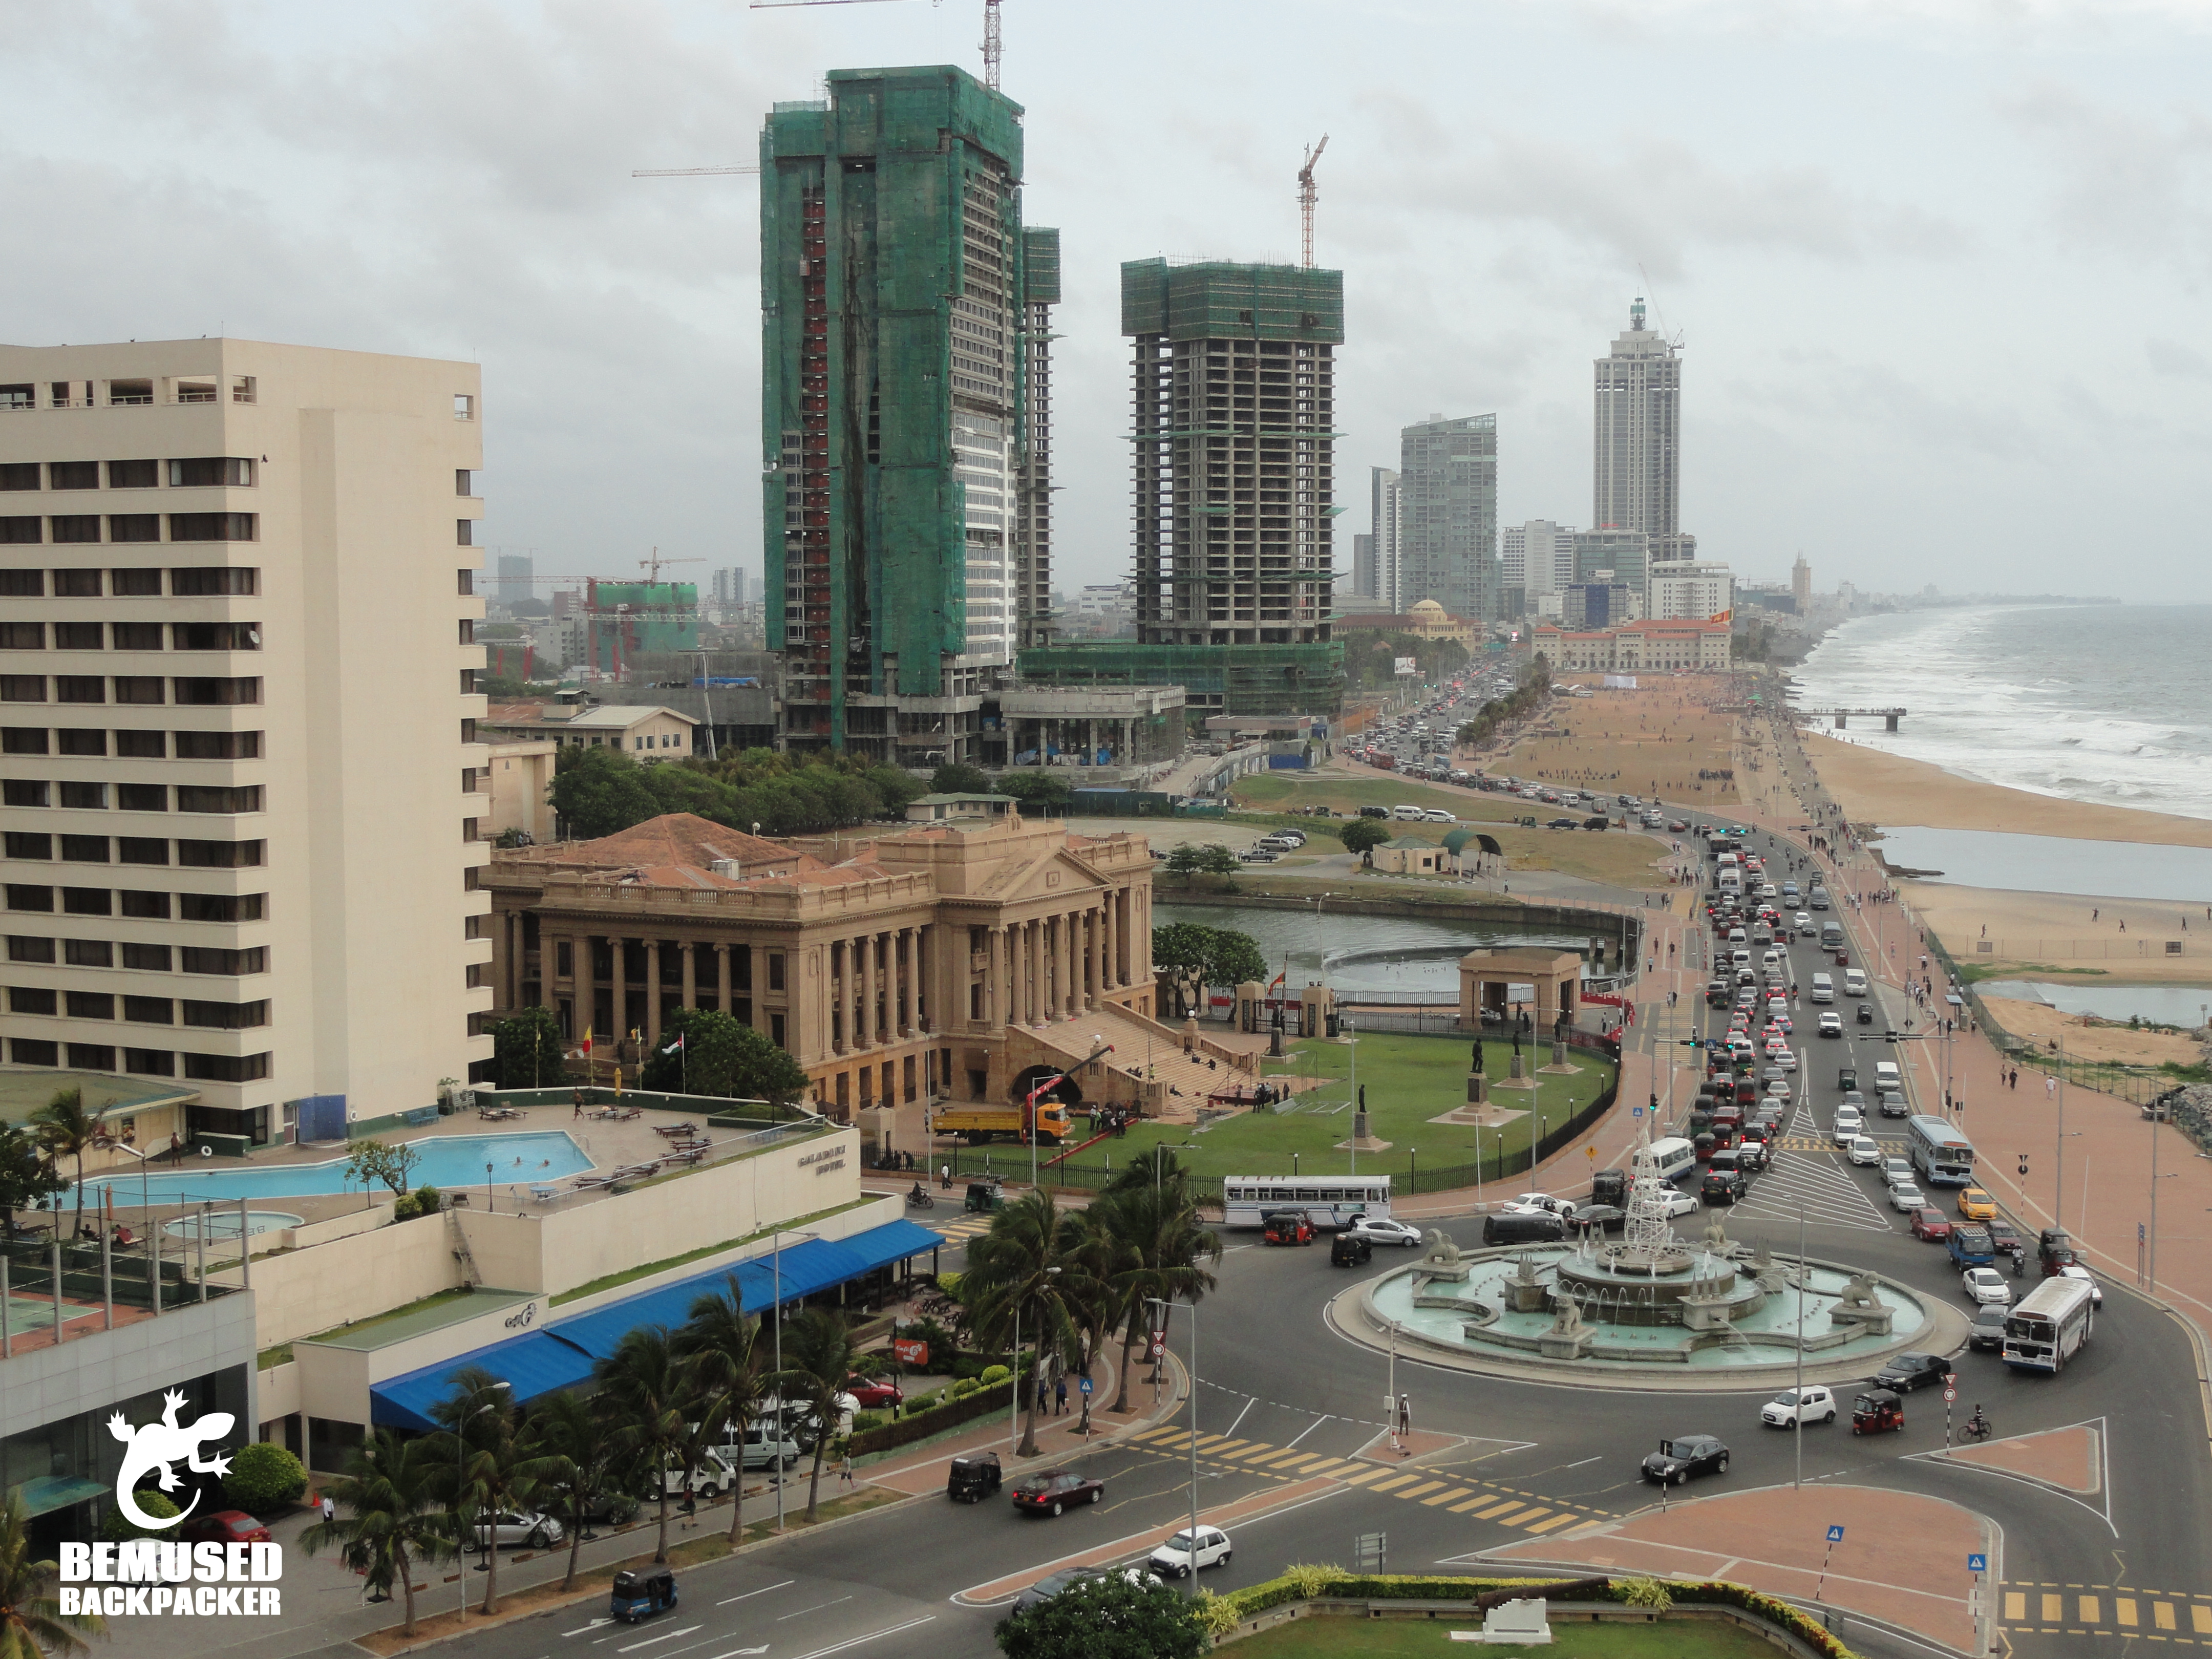 Colombo Backpackers, Check Out Colombo Backpackers : cnTRAVEL